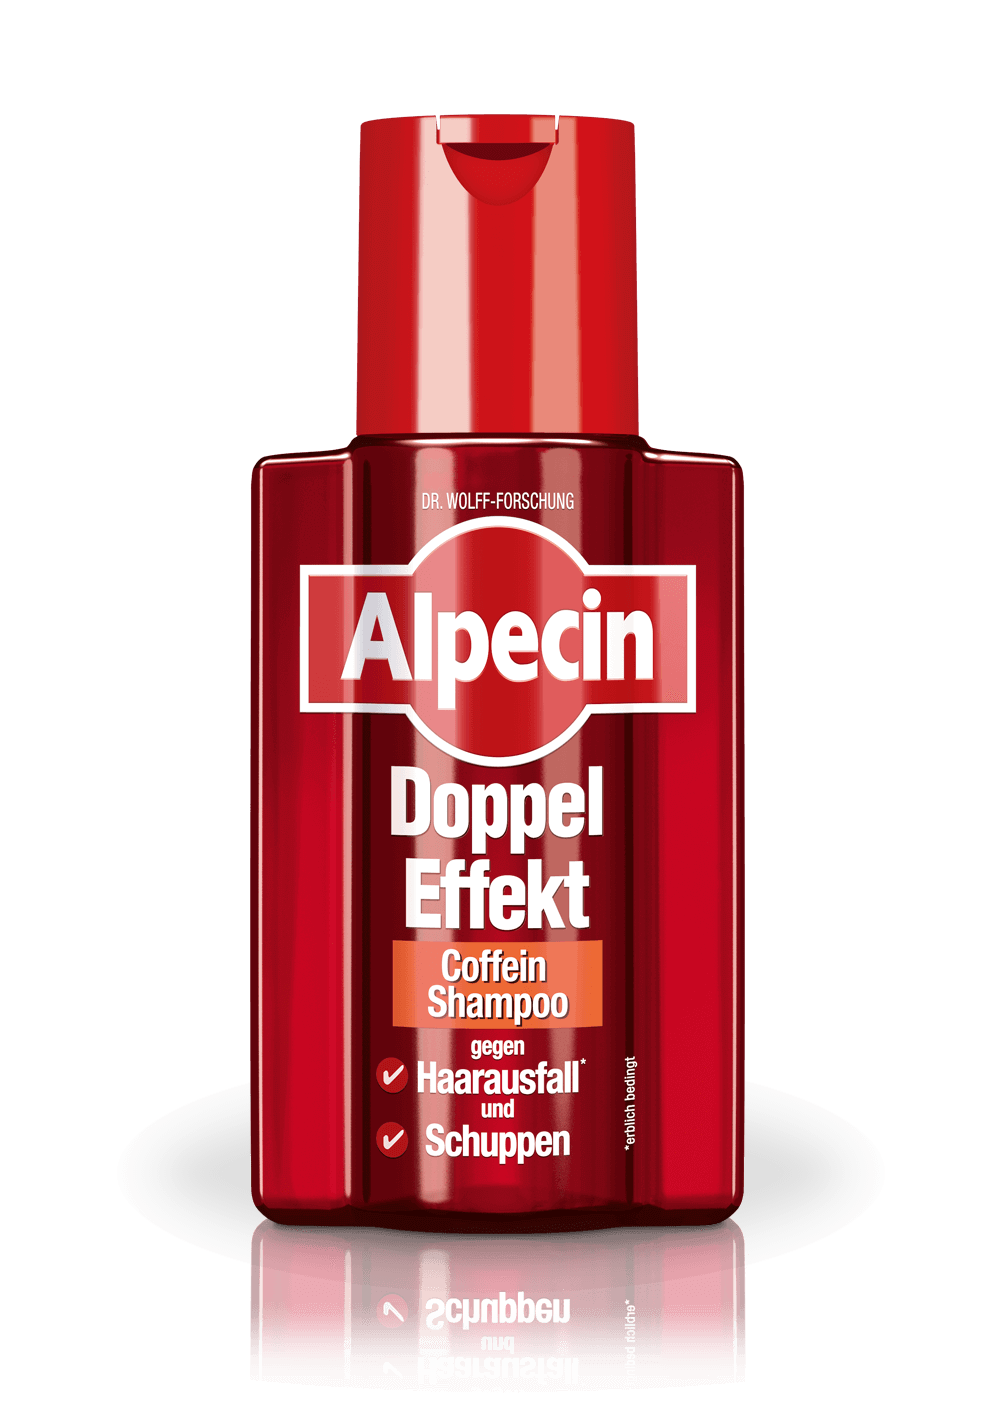 Alpecin Shampoo – What Are Its Benefits And Side Effects